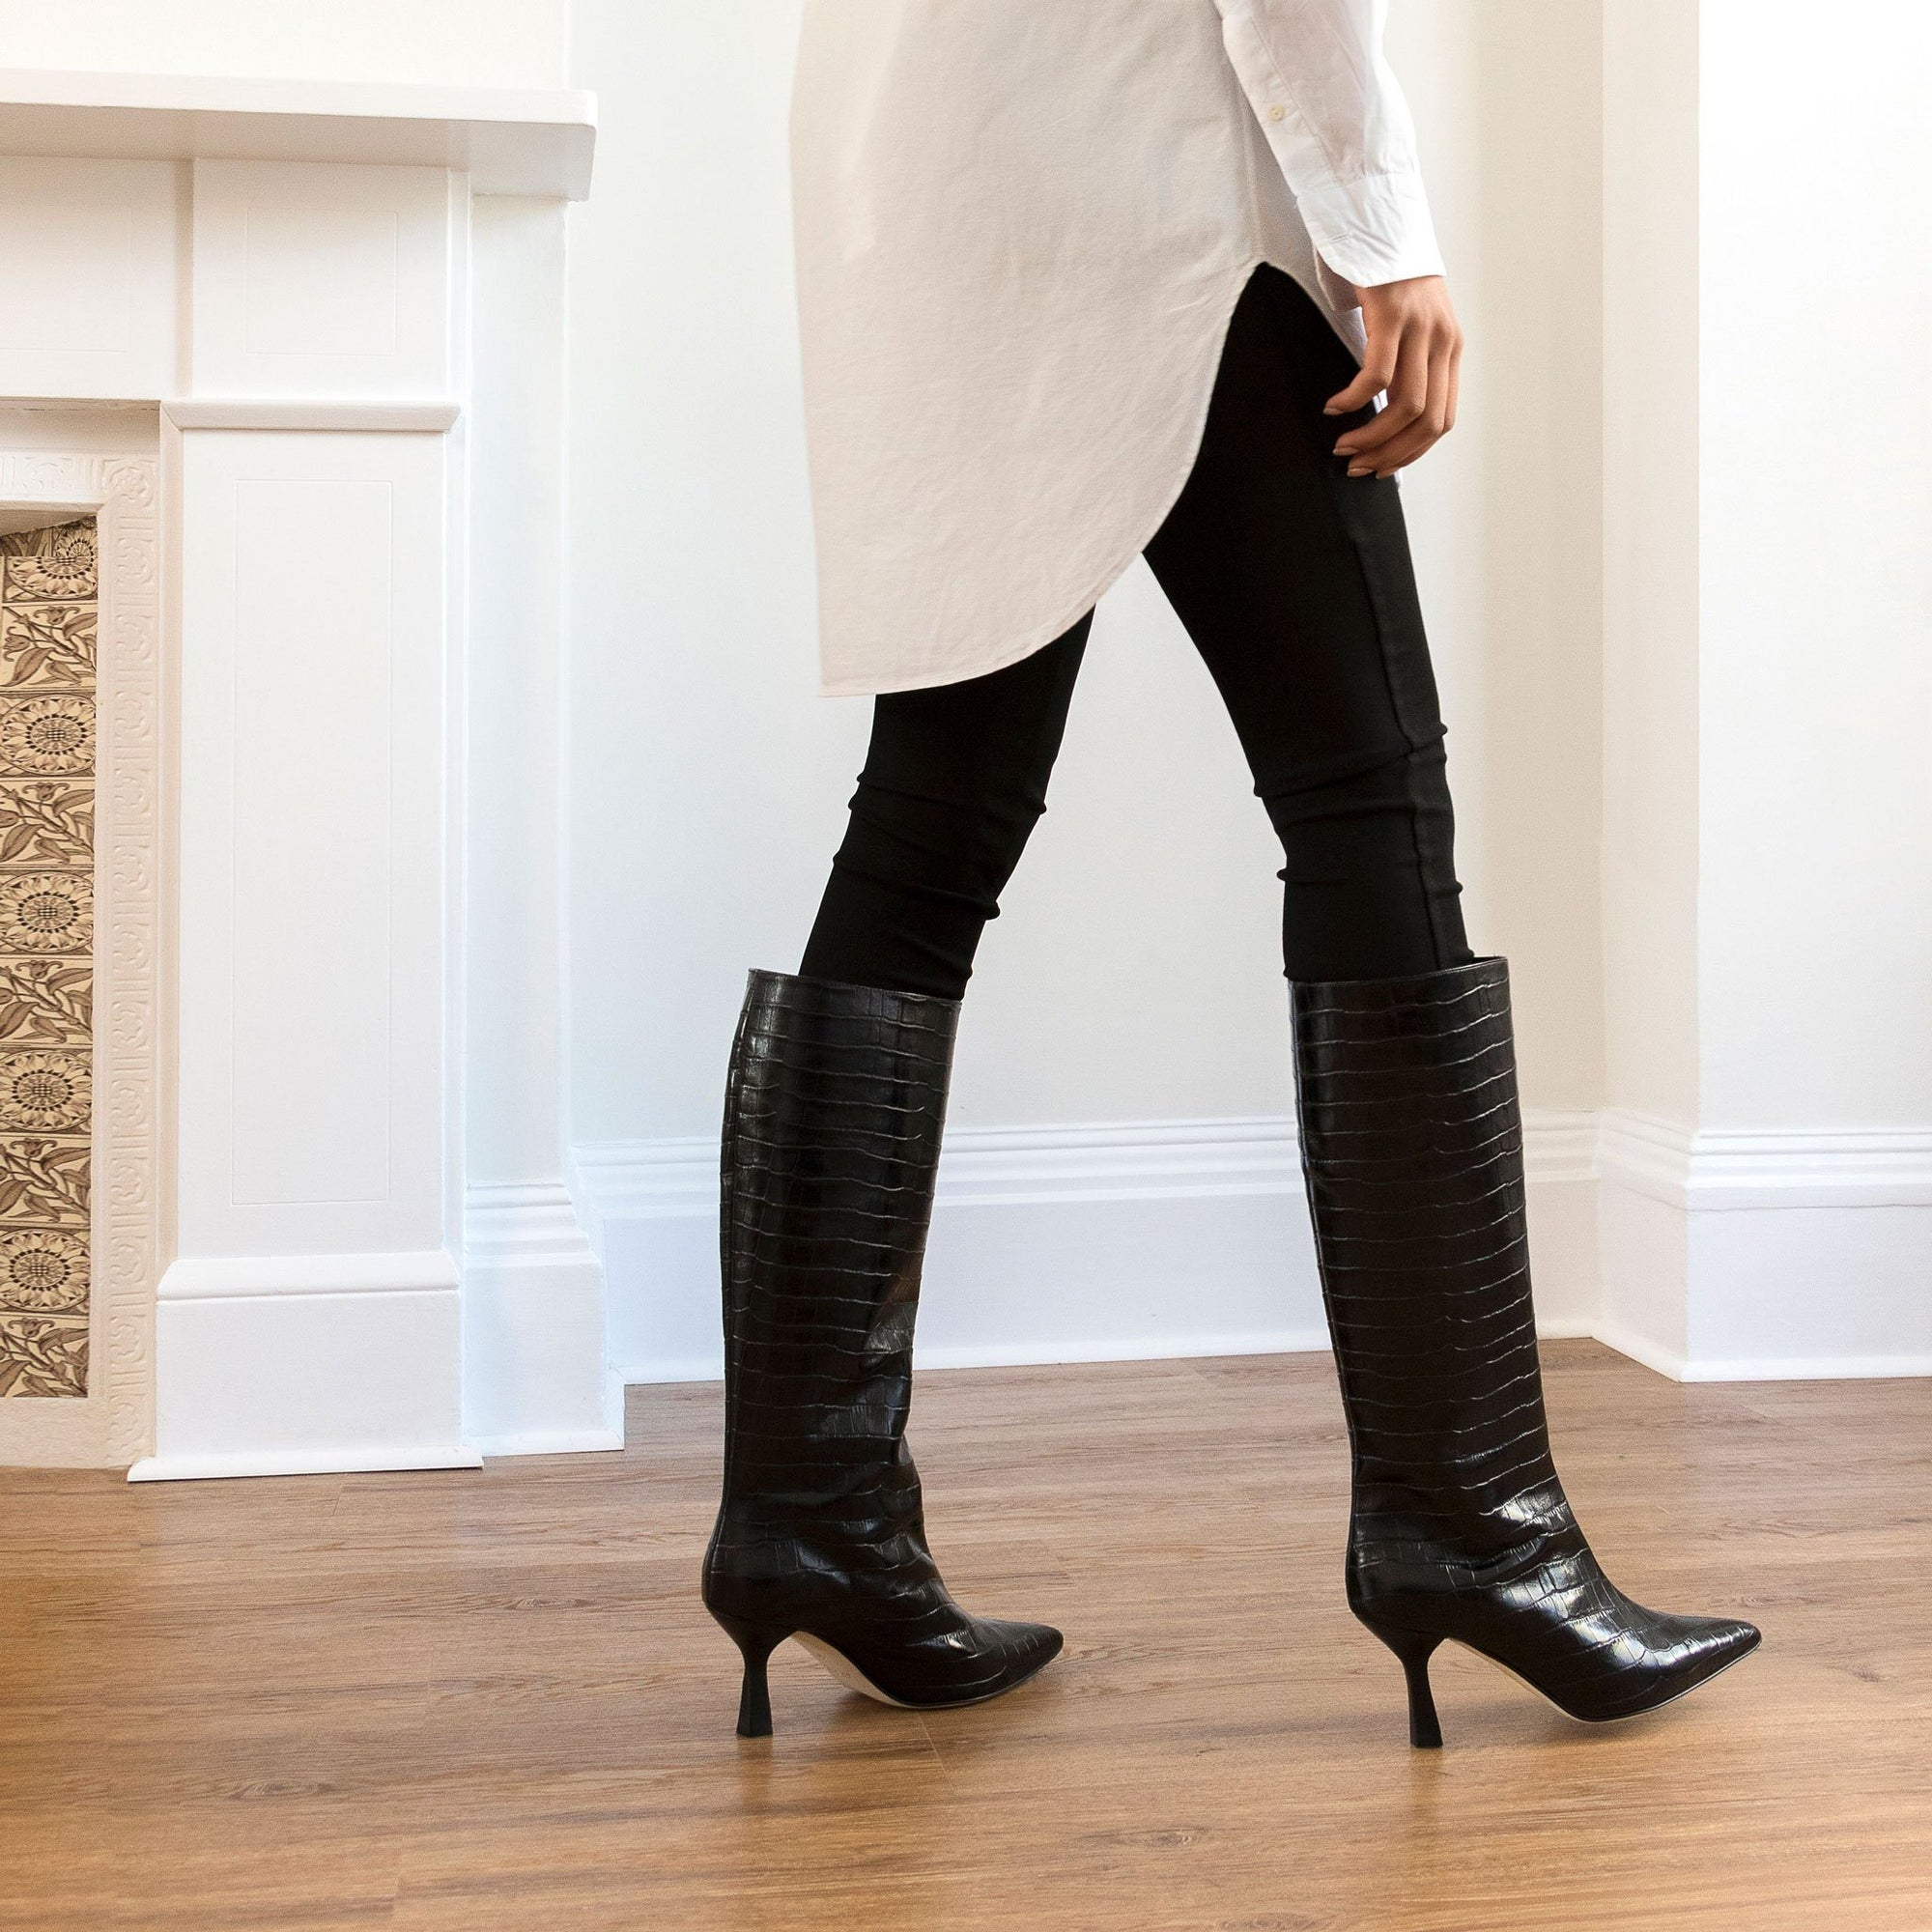 Ana Boots   Luxury Knee High Boots